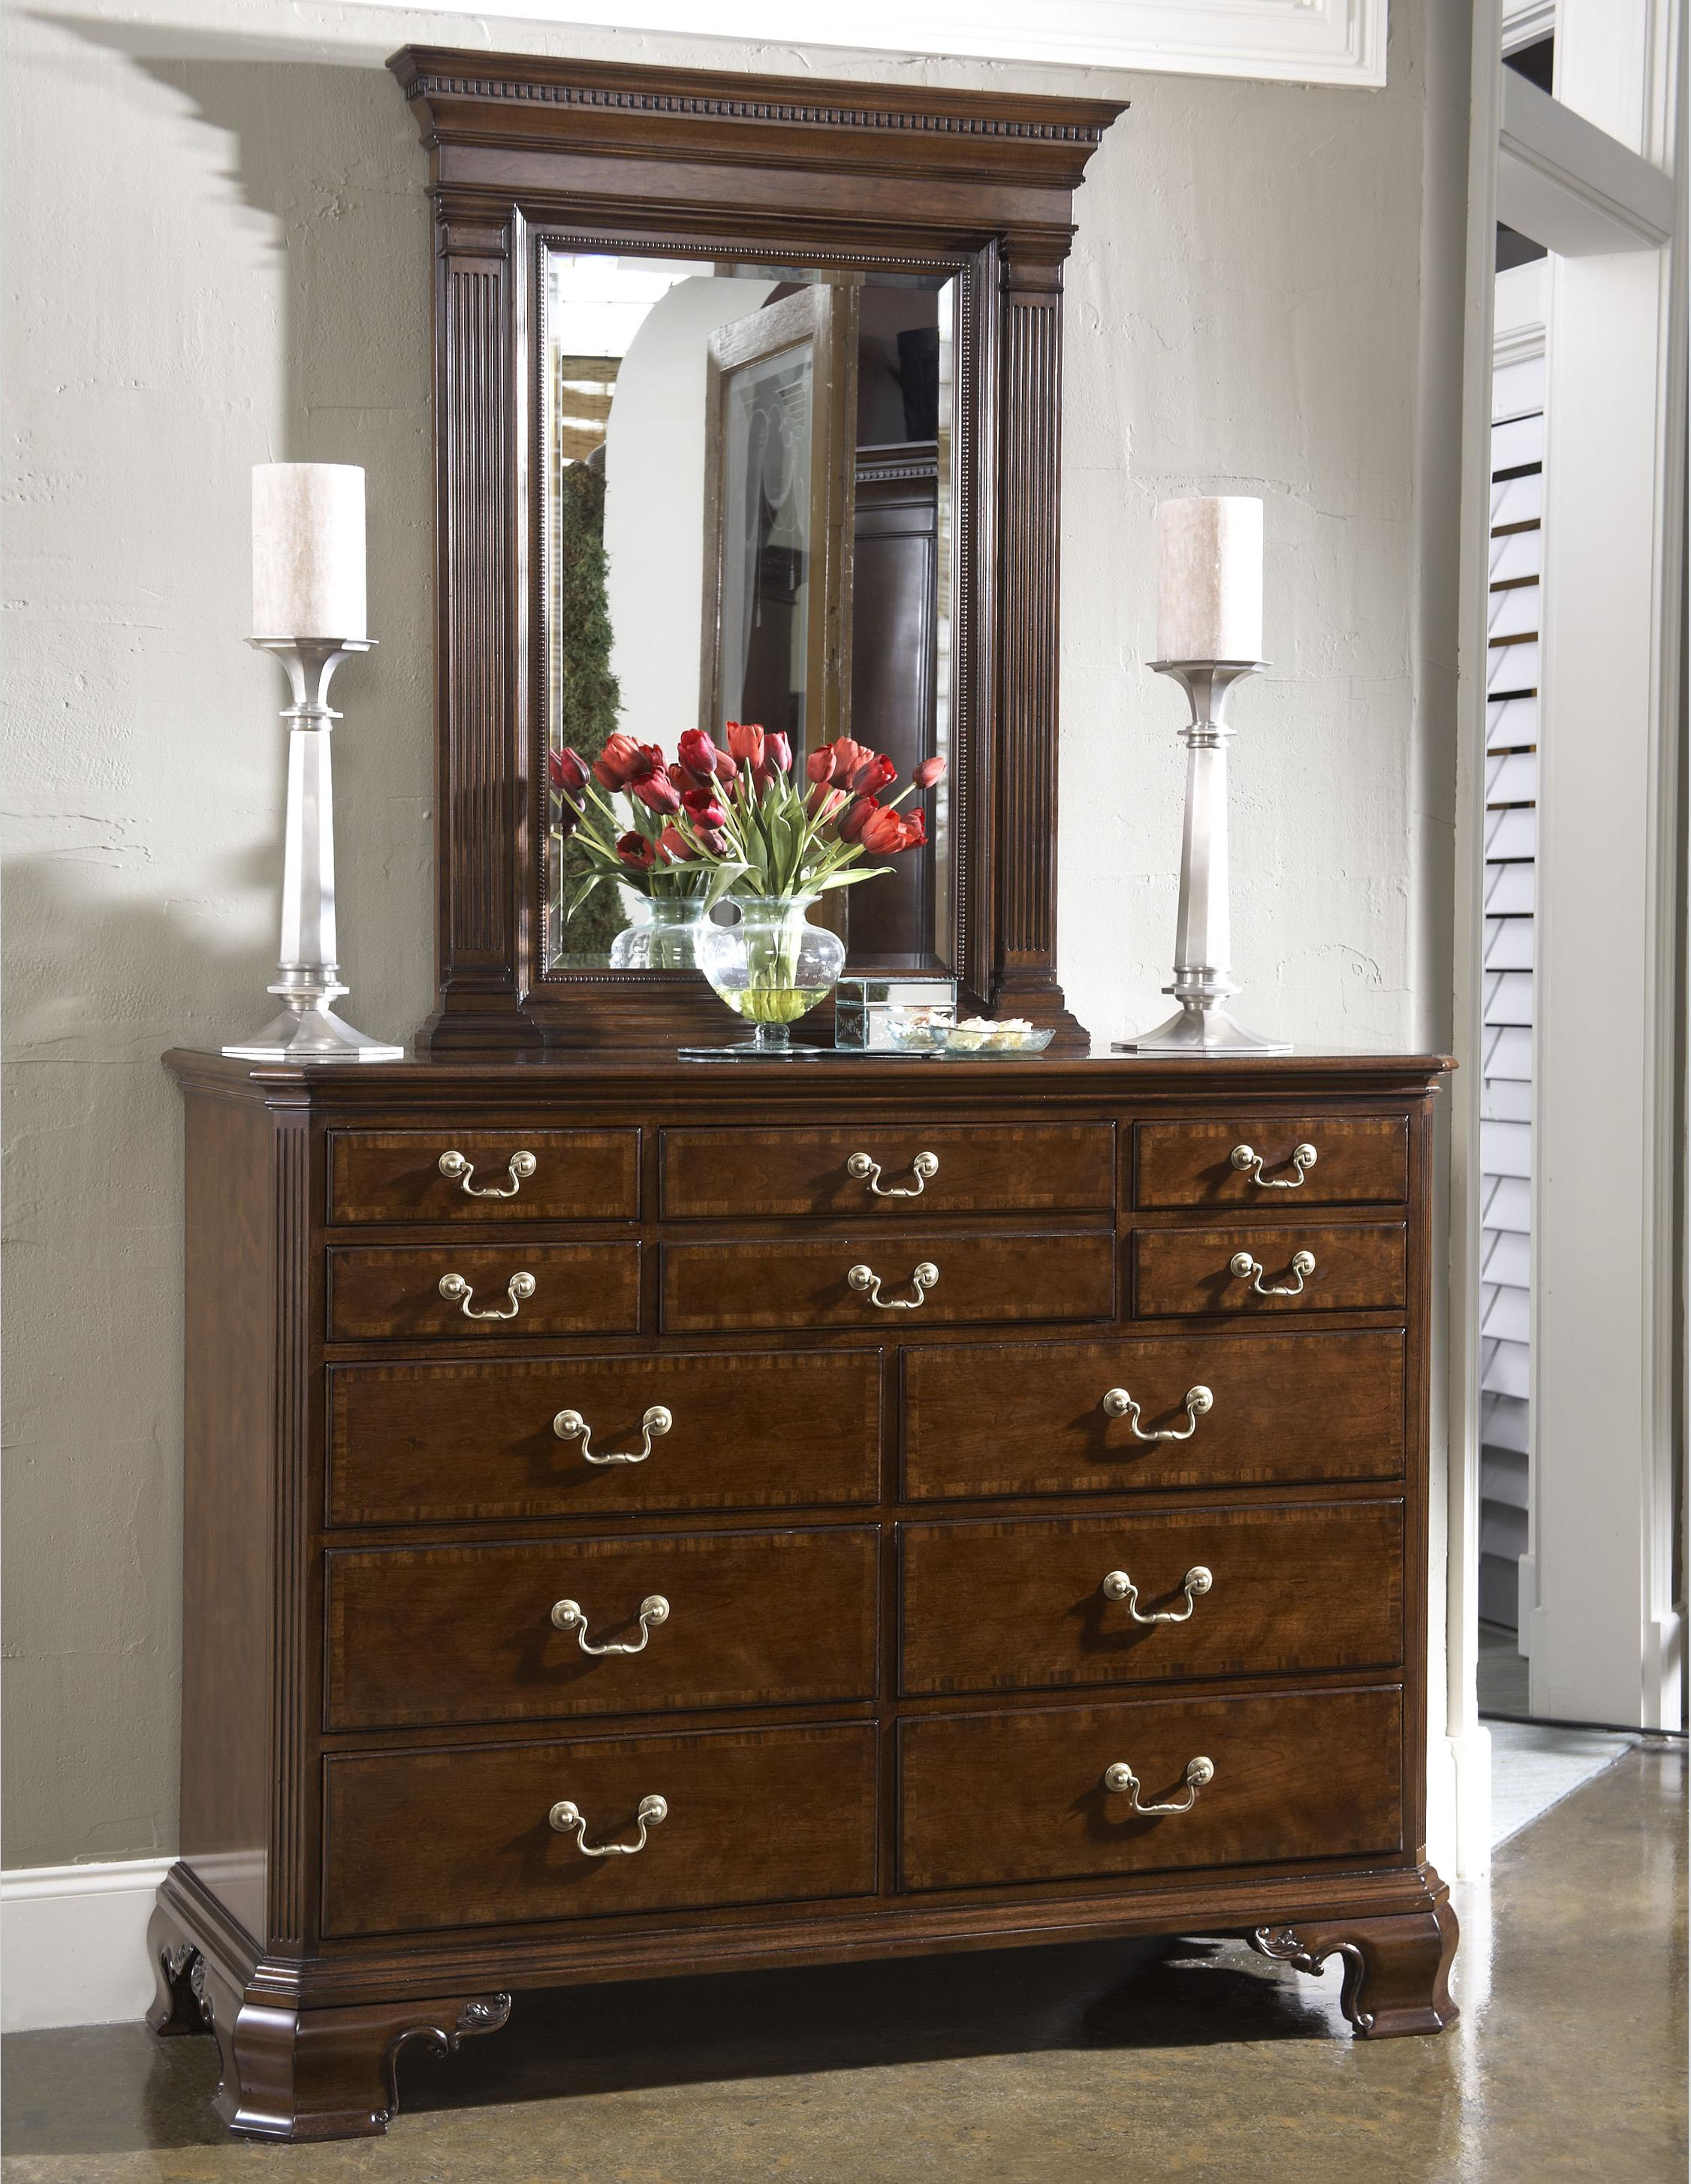 Dressing Mirror Cabinet Portsmouth Entertianment Dressing Chest Quincy Vertical Mirror